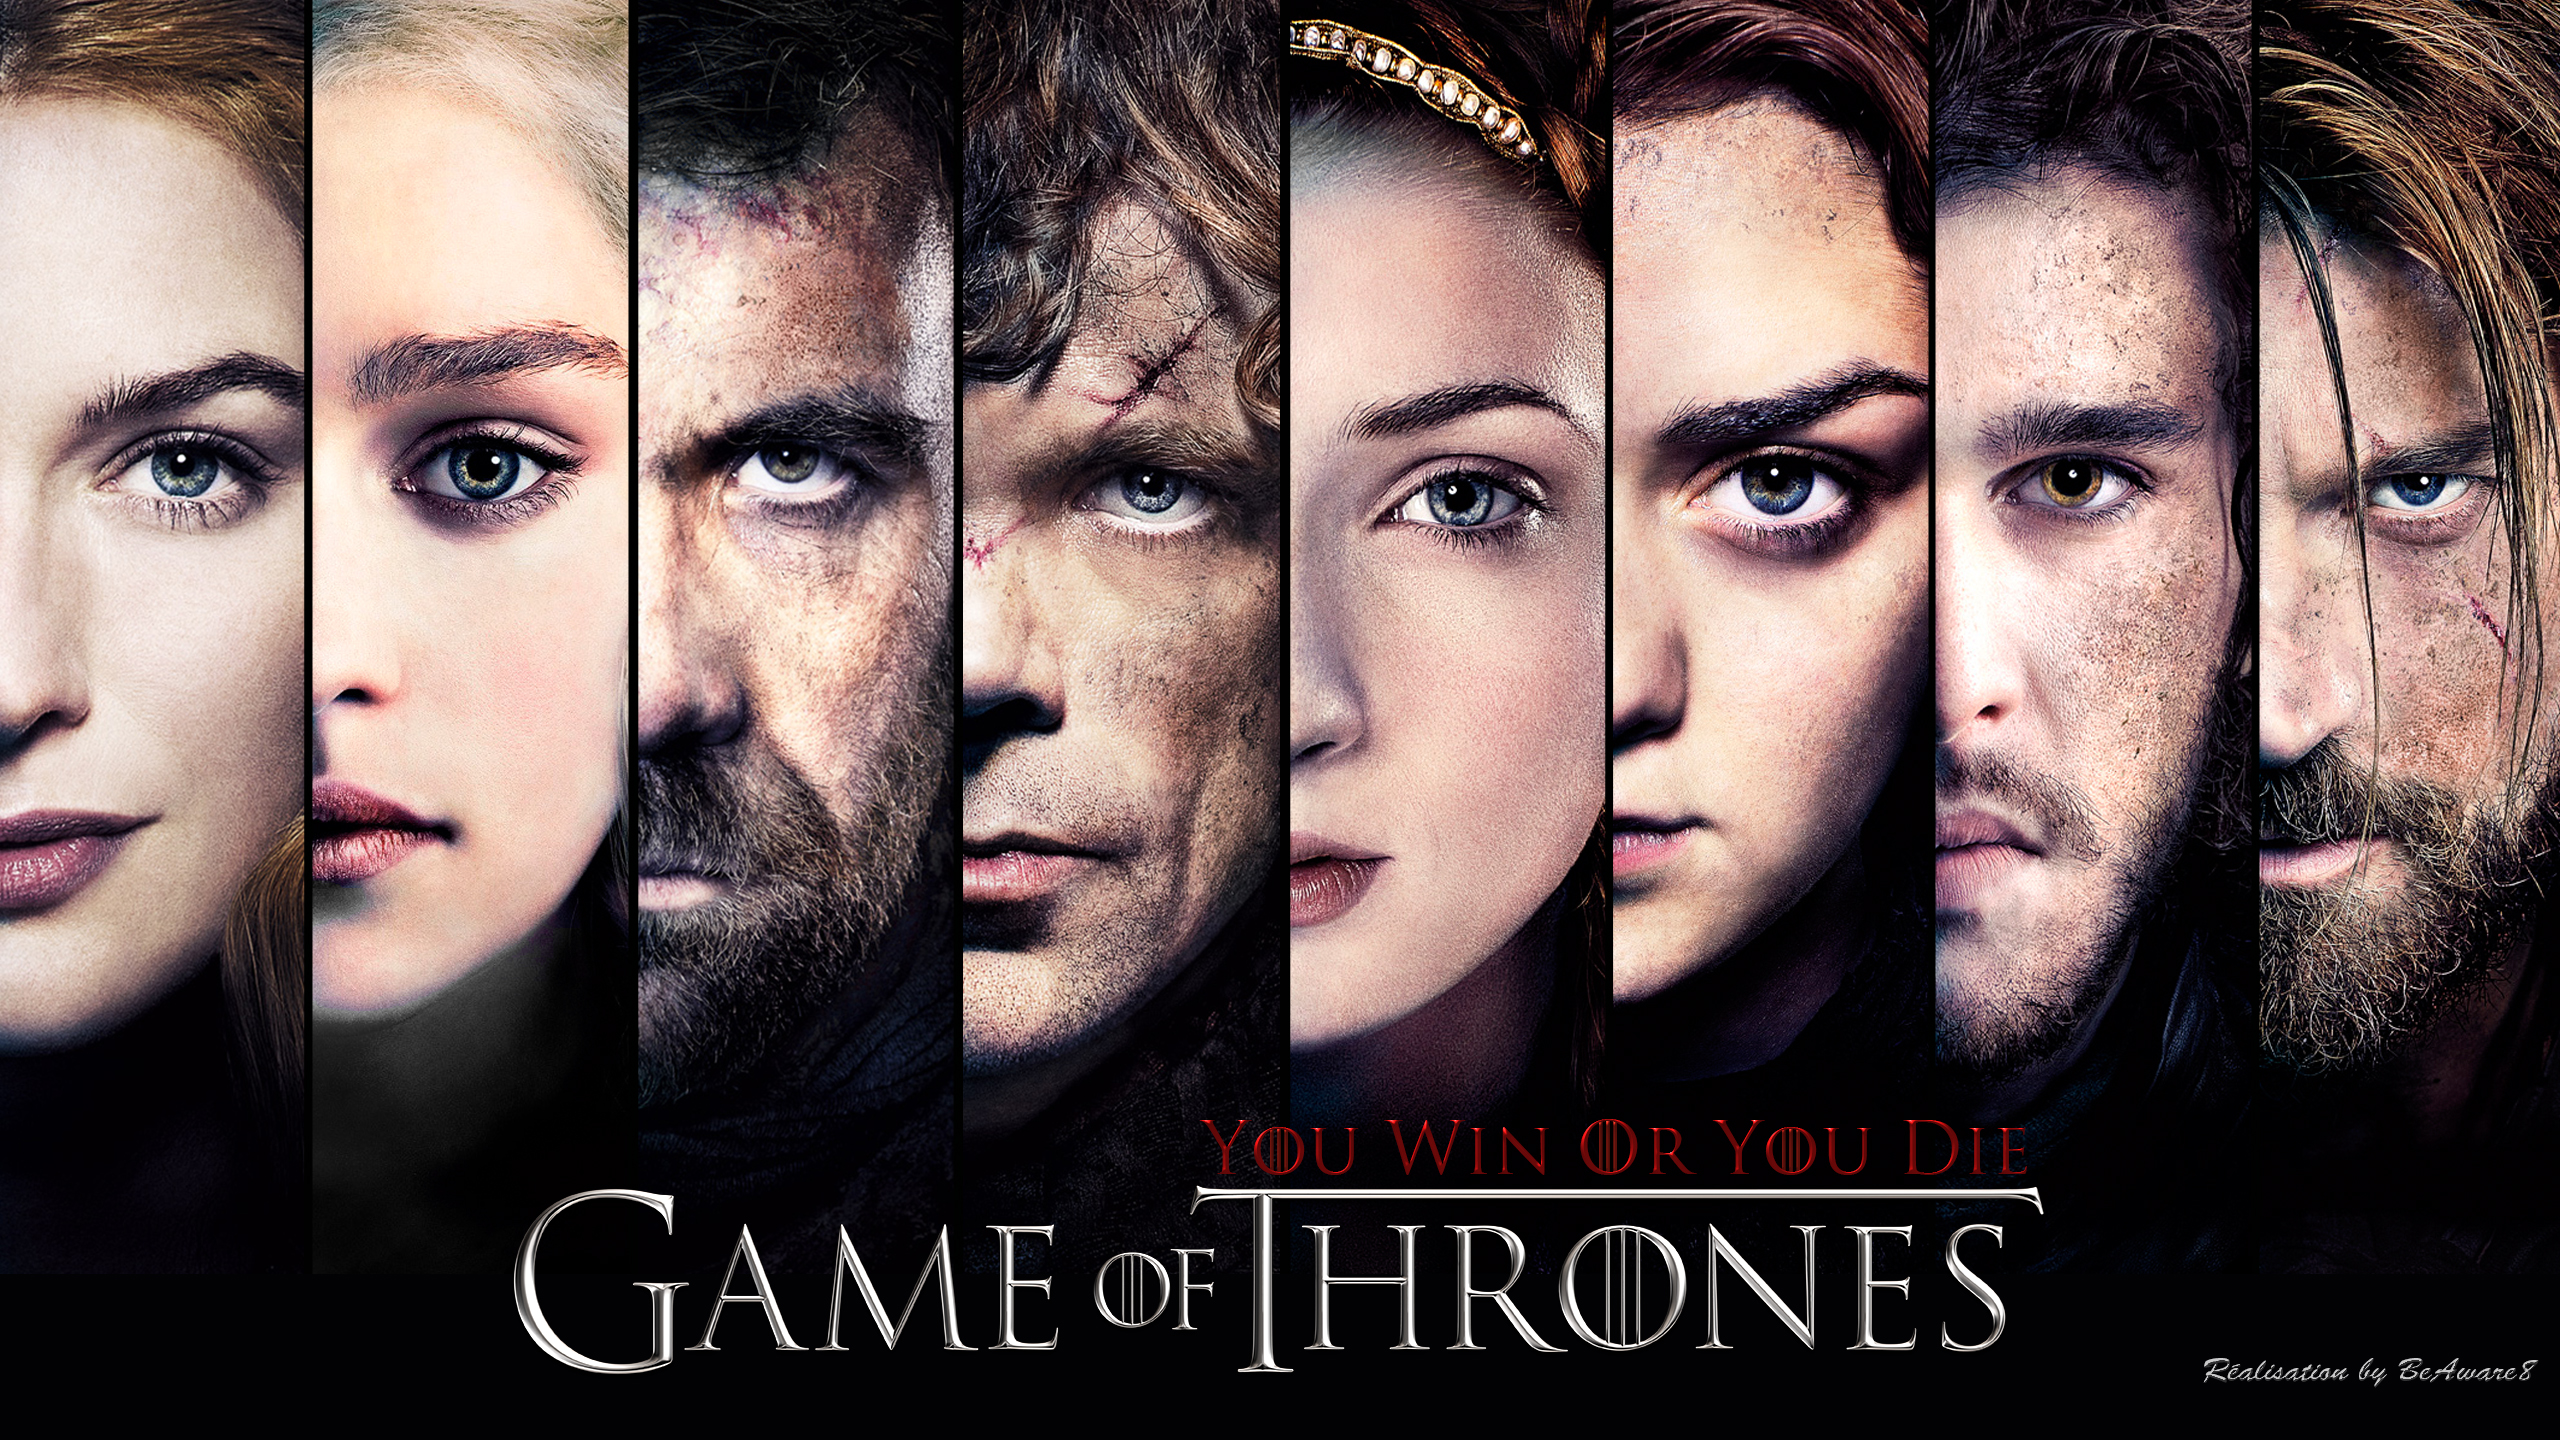 Game of Thrones   Wallpaper High Definition High Quality Widescreen 2560x1440